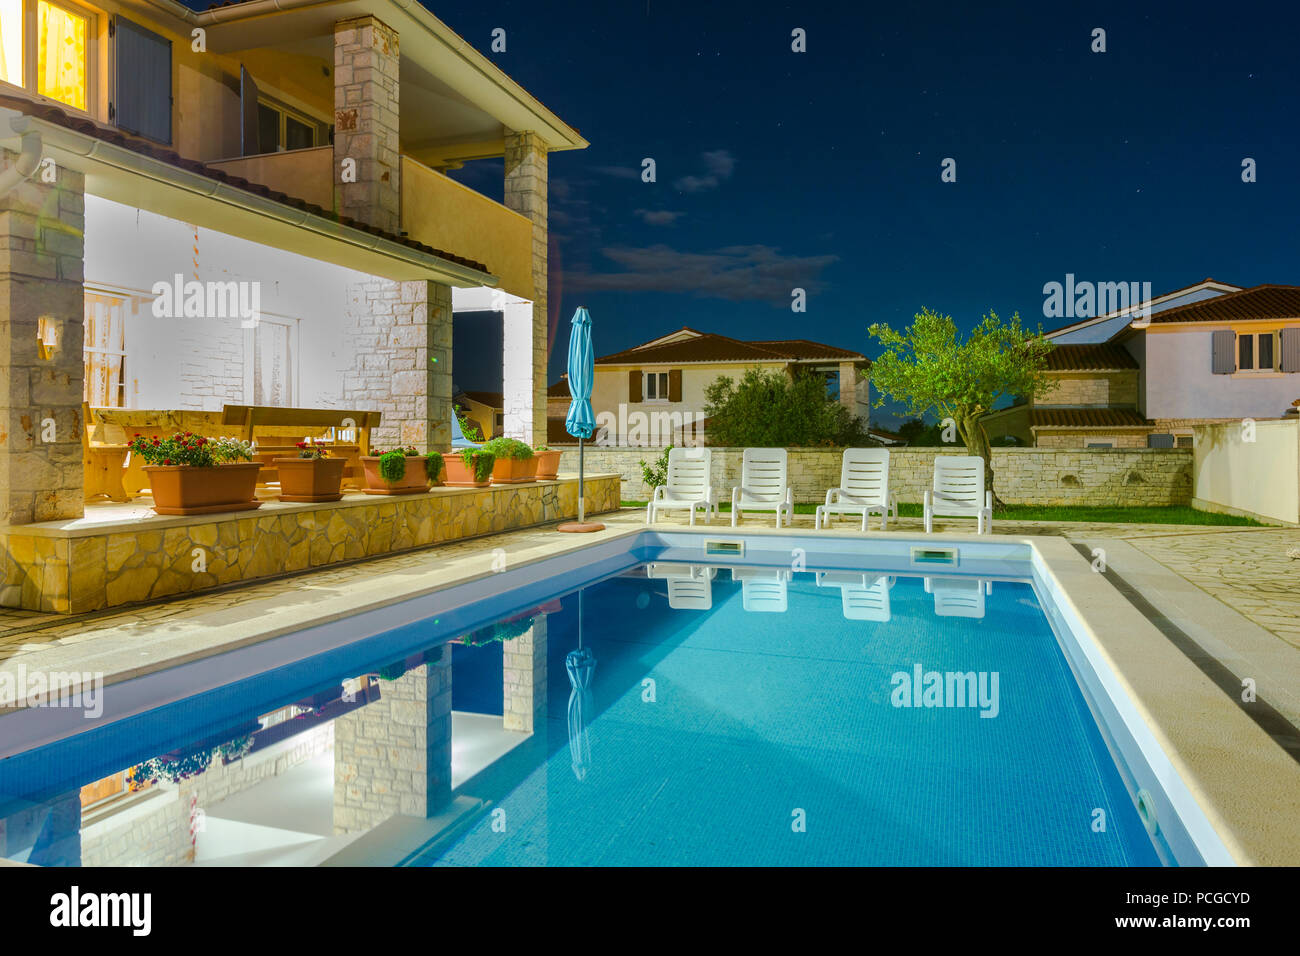 Ferienhaus Kroatien Istrien Mit Pool Istrien Stock Photos And Istrien Stock Images Alamy